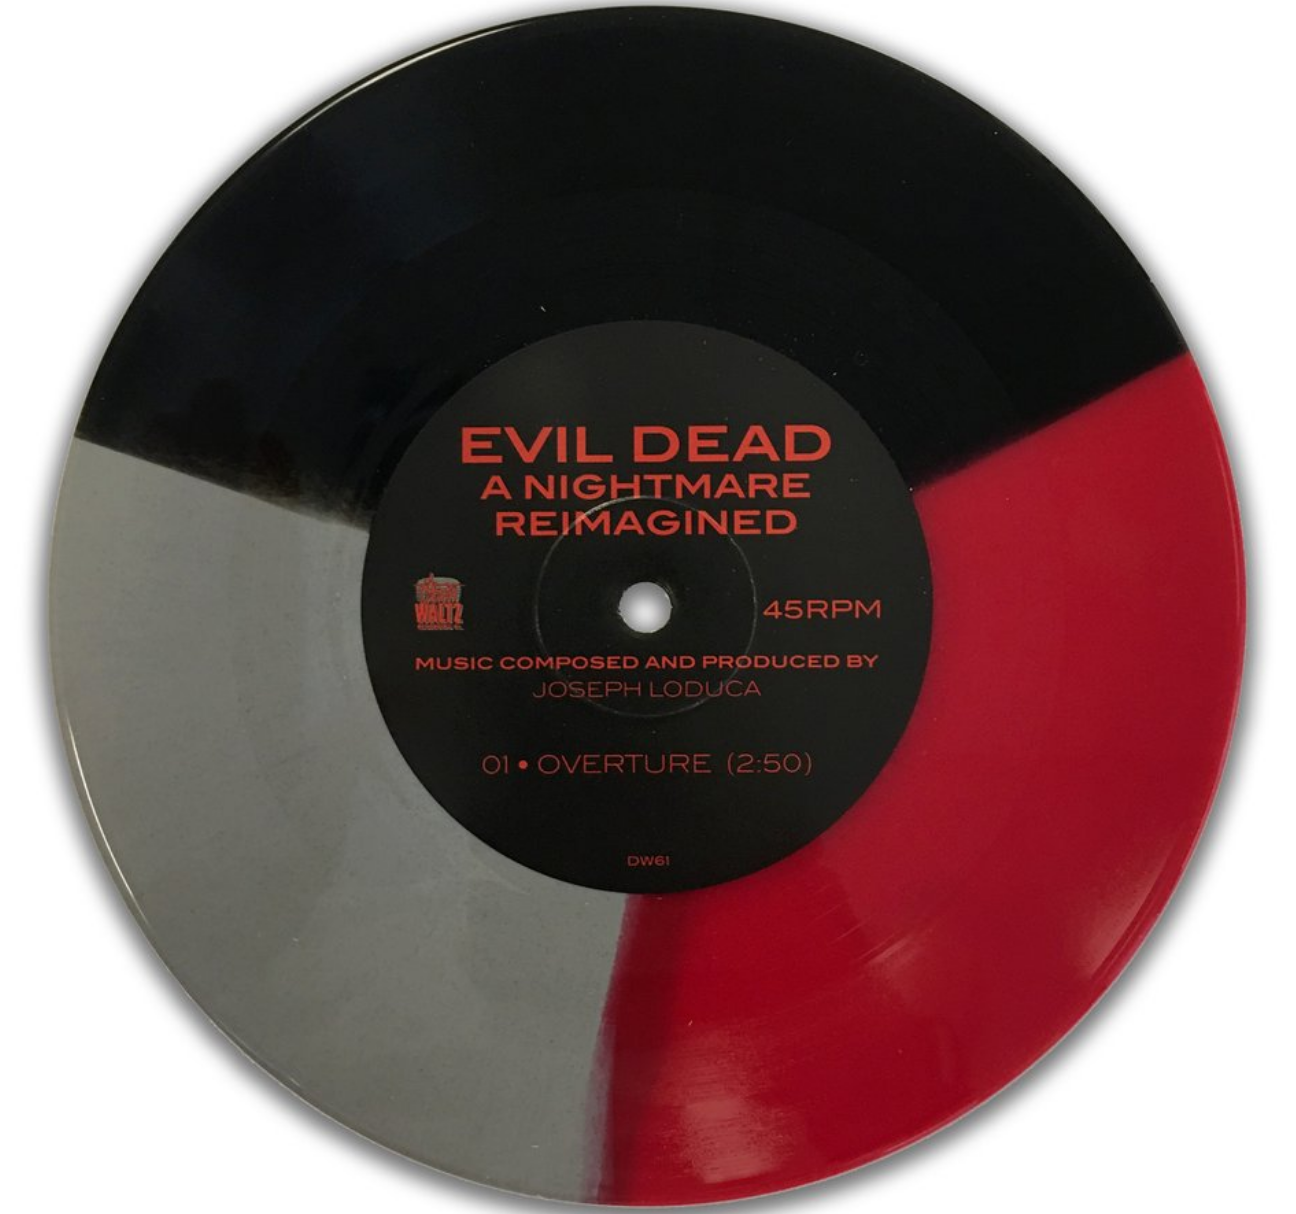 The Evil Dead - A Nightmare Reimagined